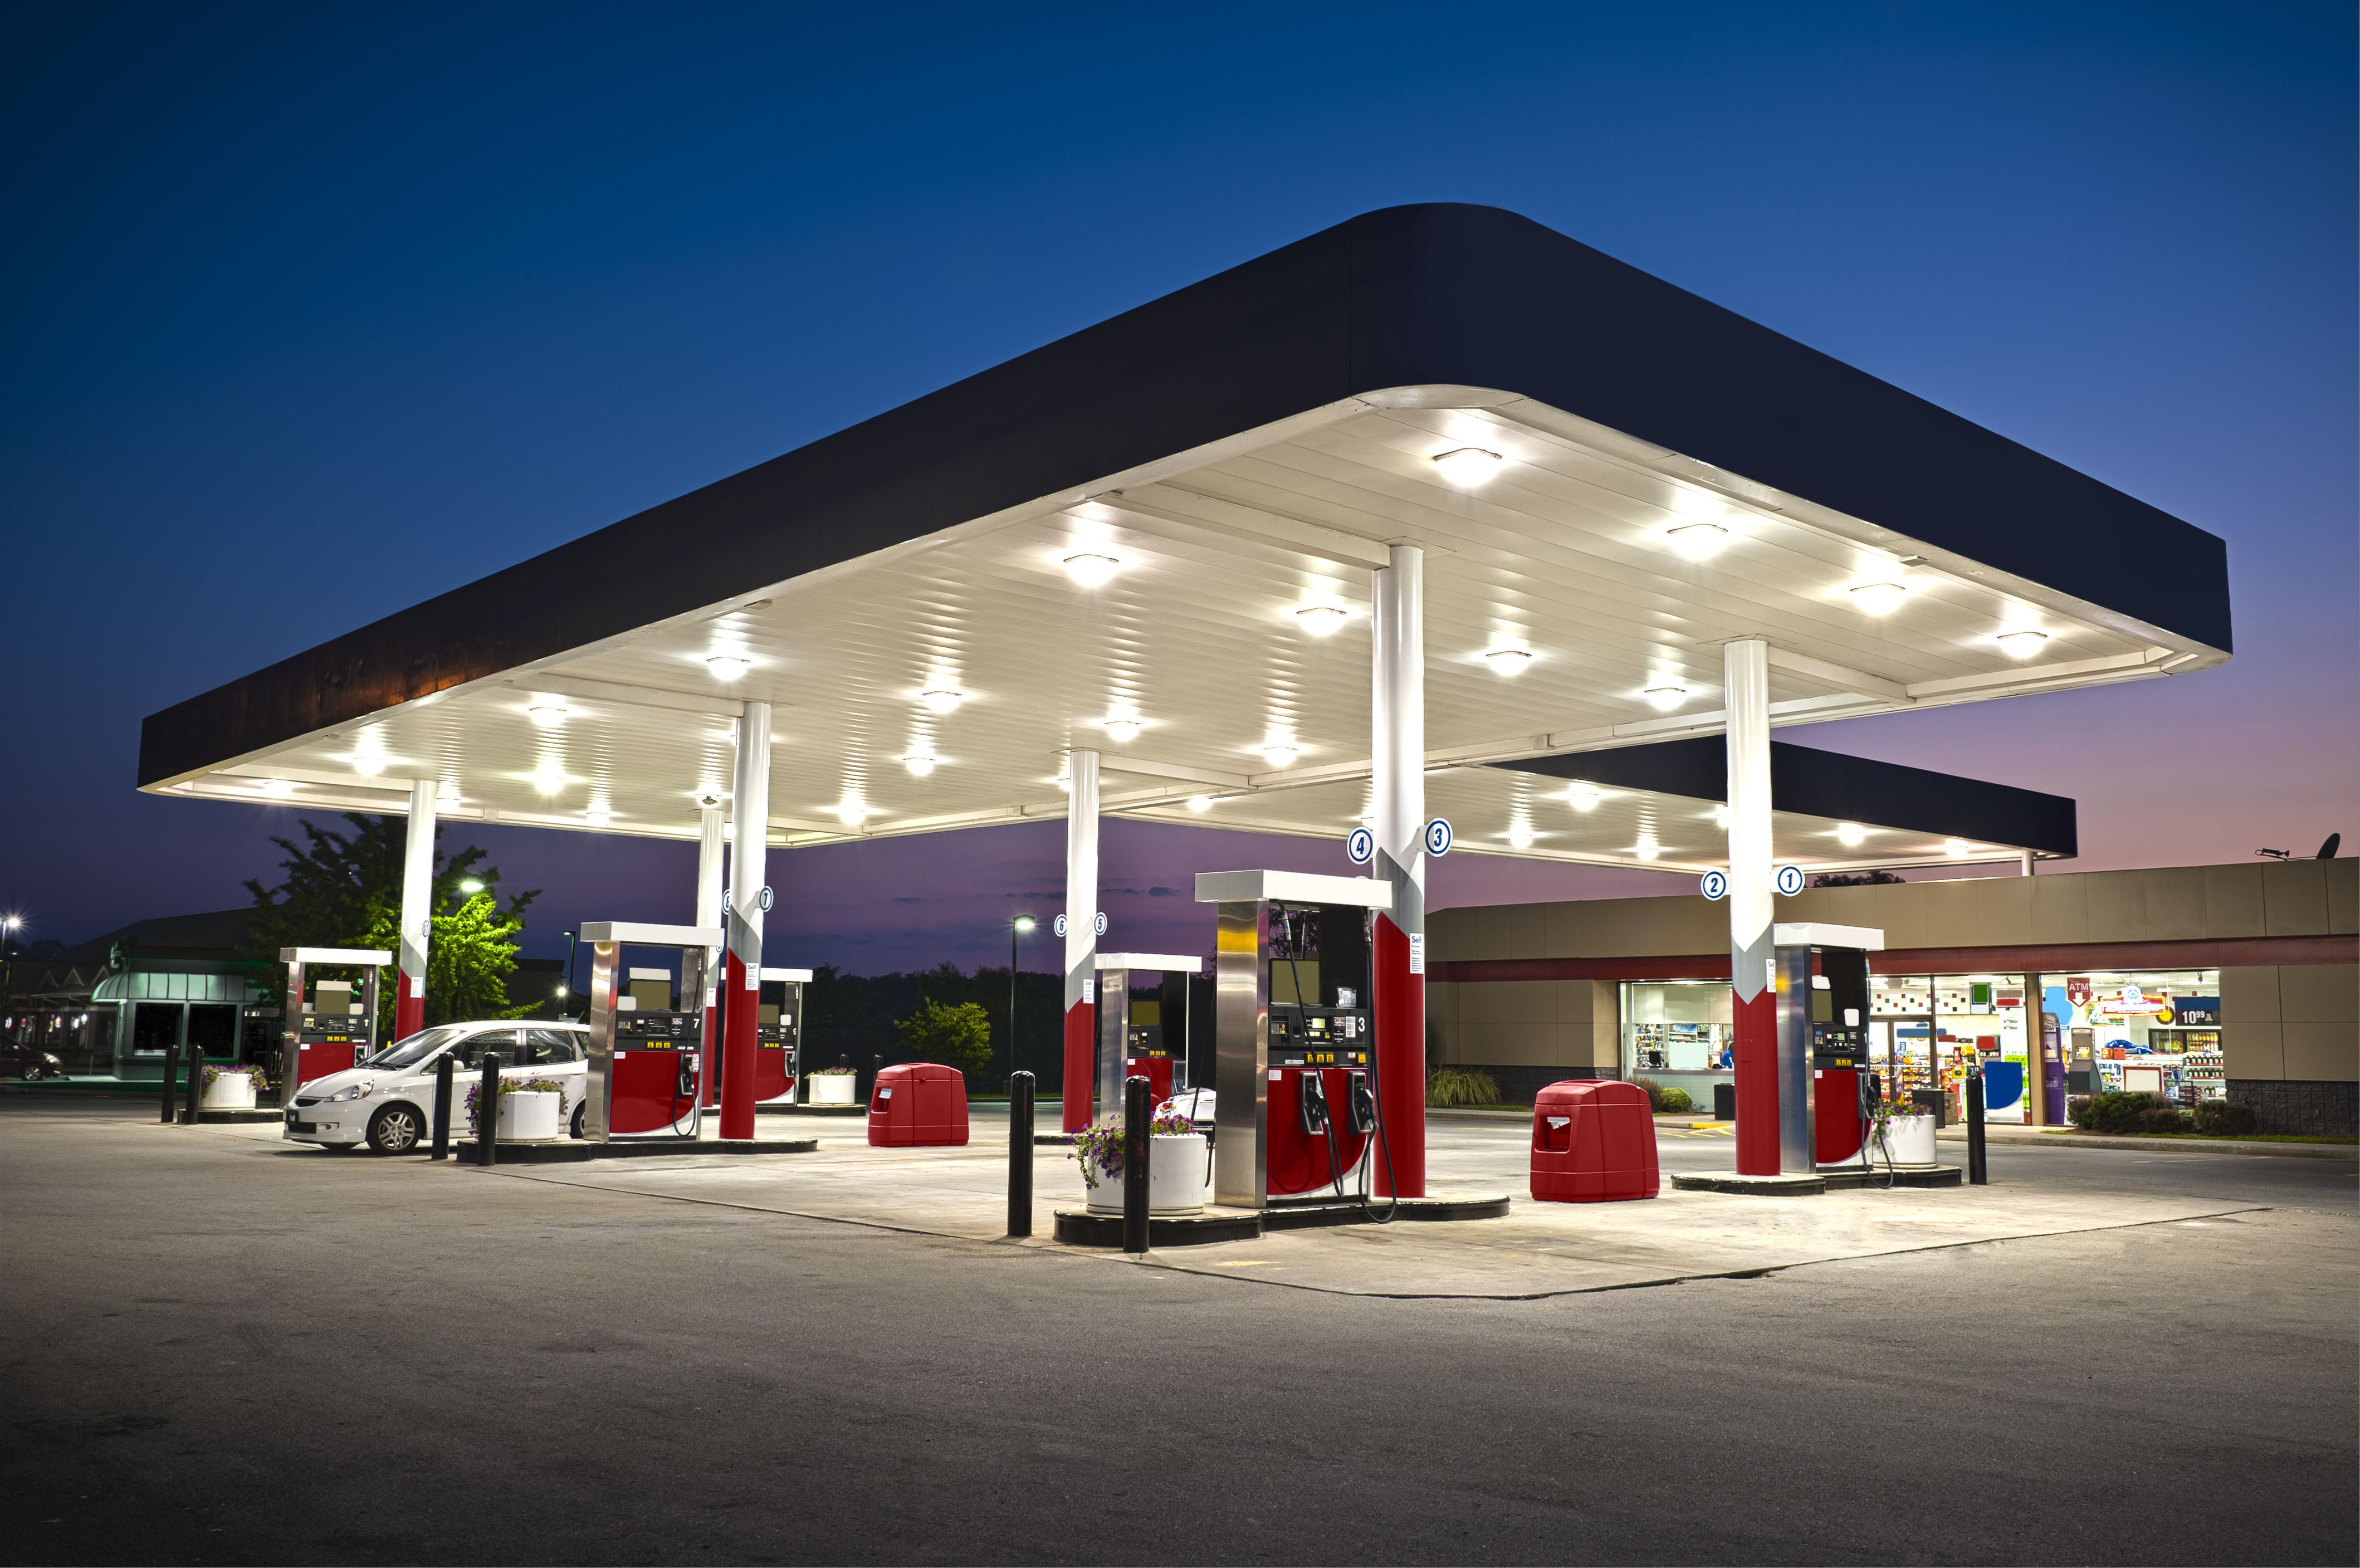 Commercial Lighting Represents One Of The Simplest Ways To Find Energy Savings For Gas Stations And